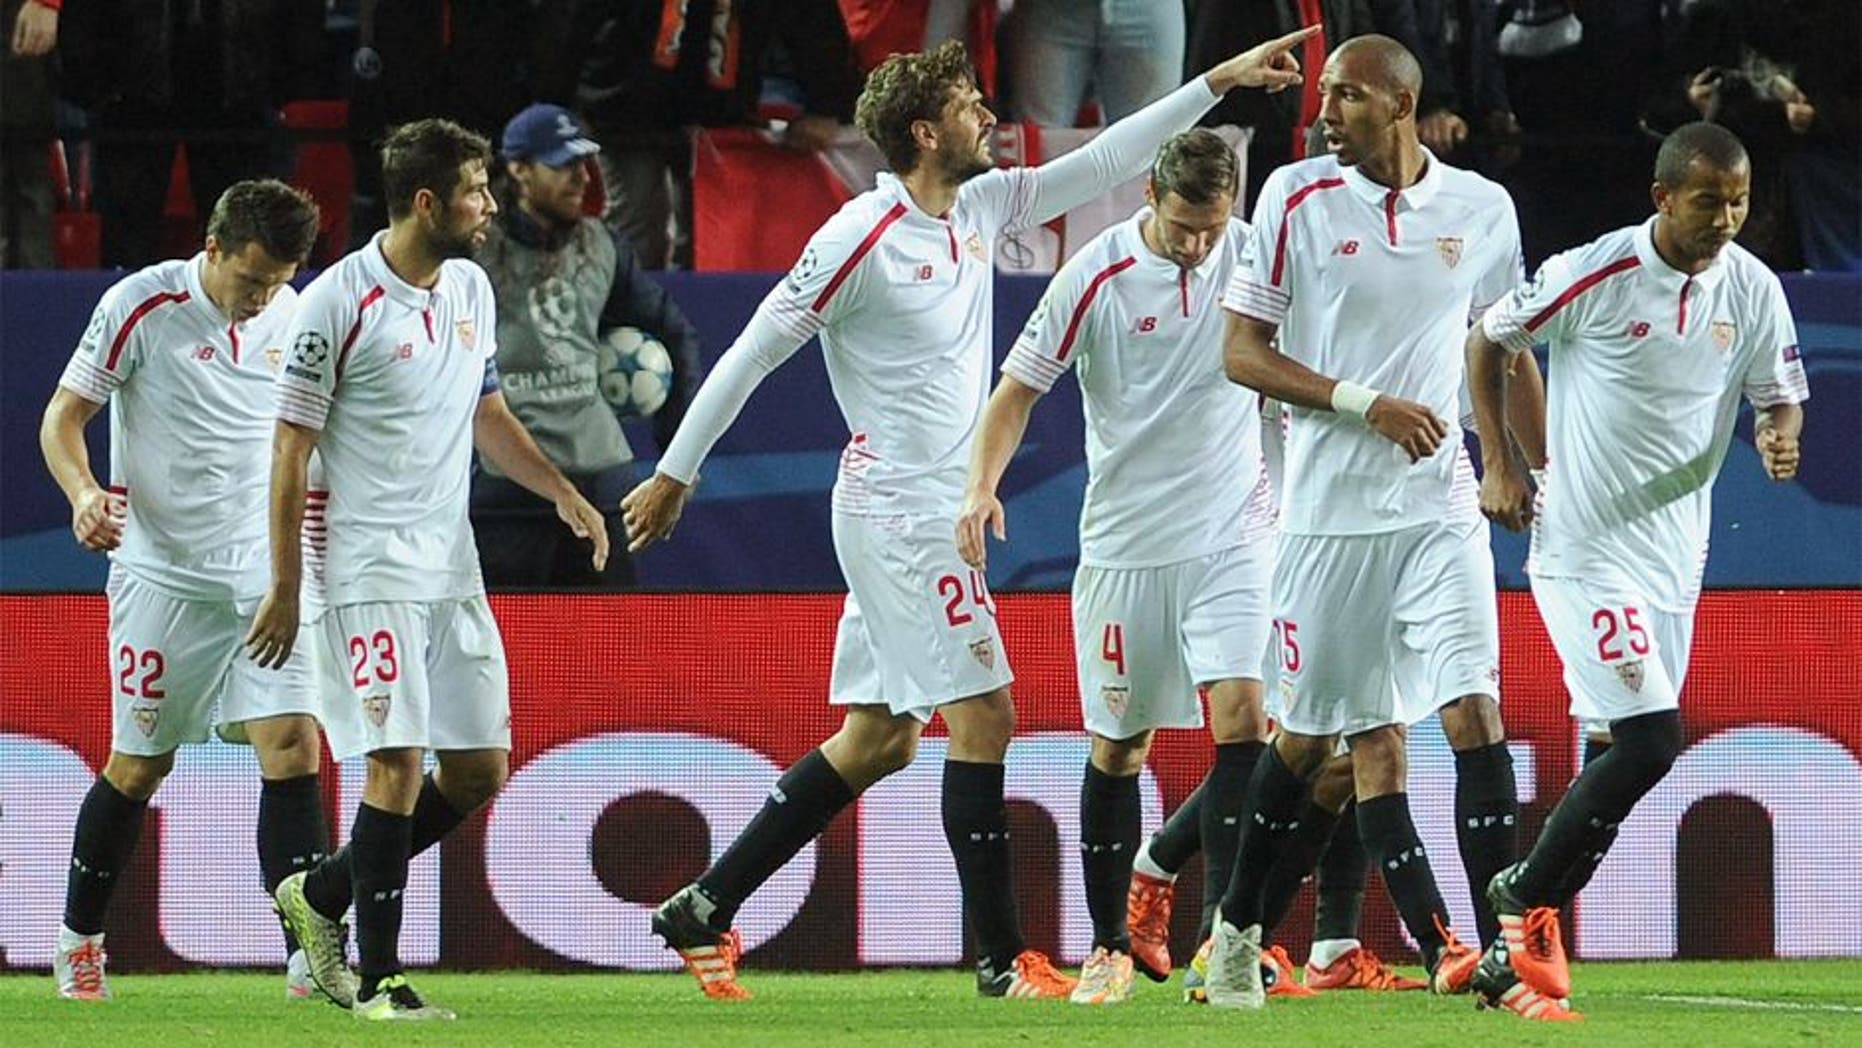 Sevilla's Spanish forward Fernando Llorente (C) celebrates with teammates after scoring a goal during the UEFA Champions League Group D football match Sevilla FC vs Juventus at the Ramon Sanchez Pizjuan stadium in Sevilla on December 8, 2015. AFP PHOTO/ CRISTINA QUICLER / AFP / CRISTINA QUICLER (Photo credit should read CRISTINA QUICLER/AFP/Getty Images)